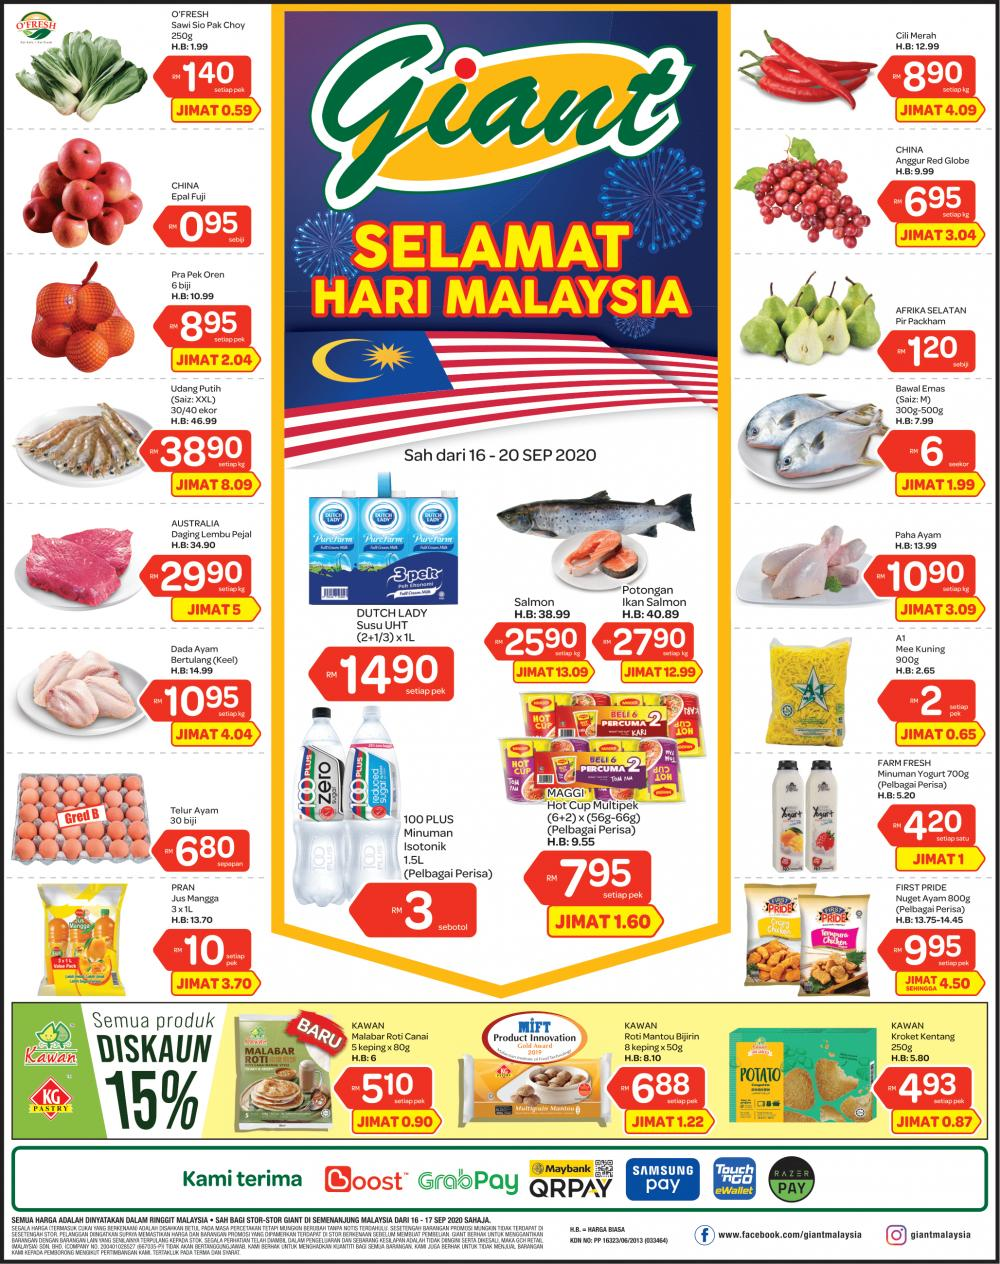 Giant Malaysia Day Promotion (16 September 2020 - 20 September 2020)